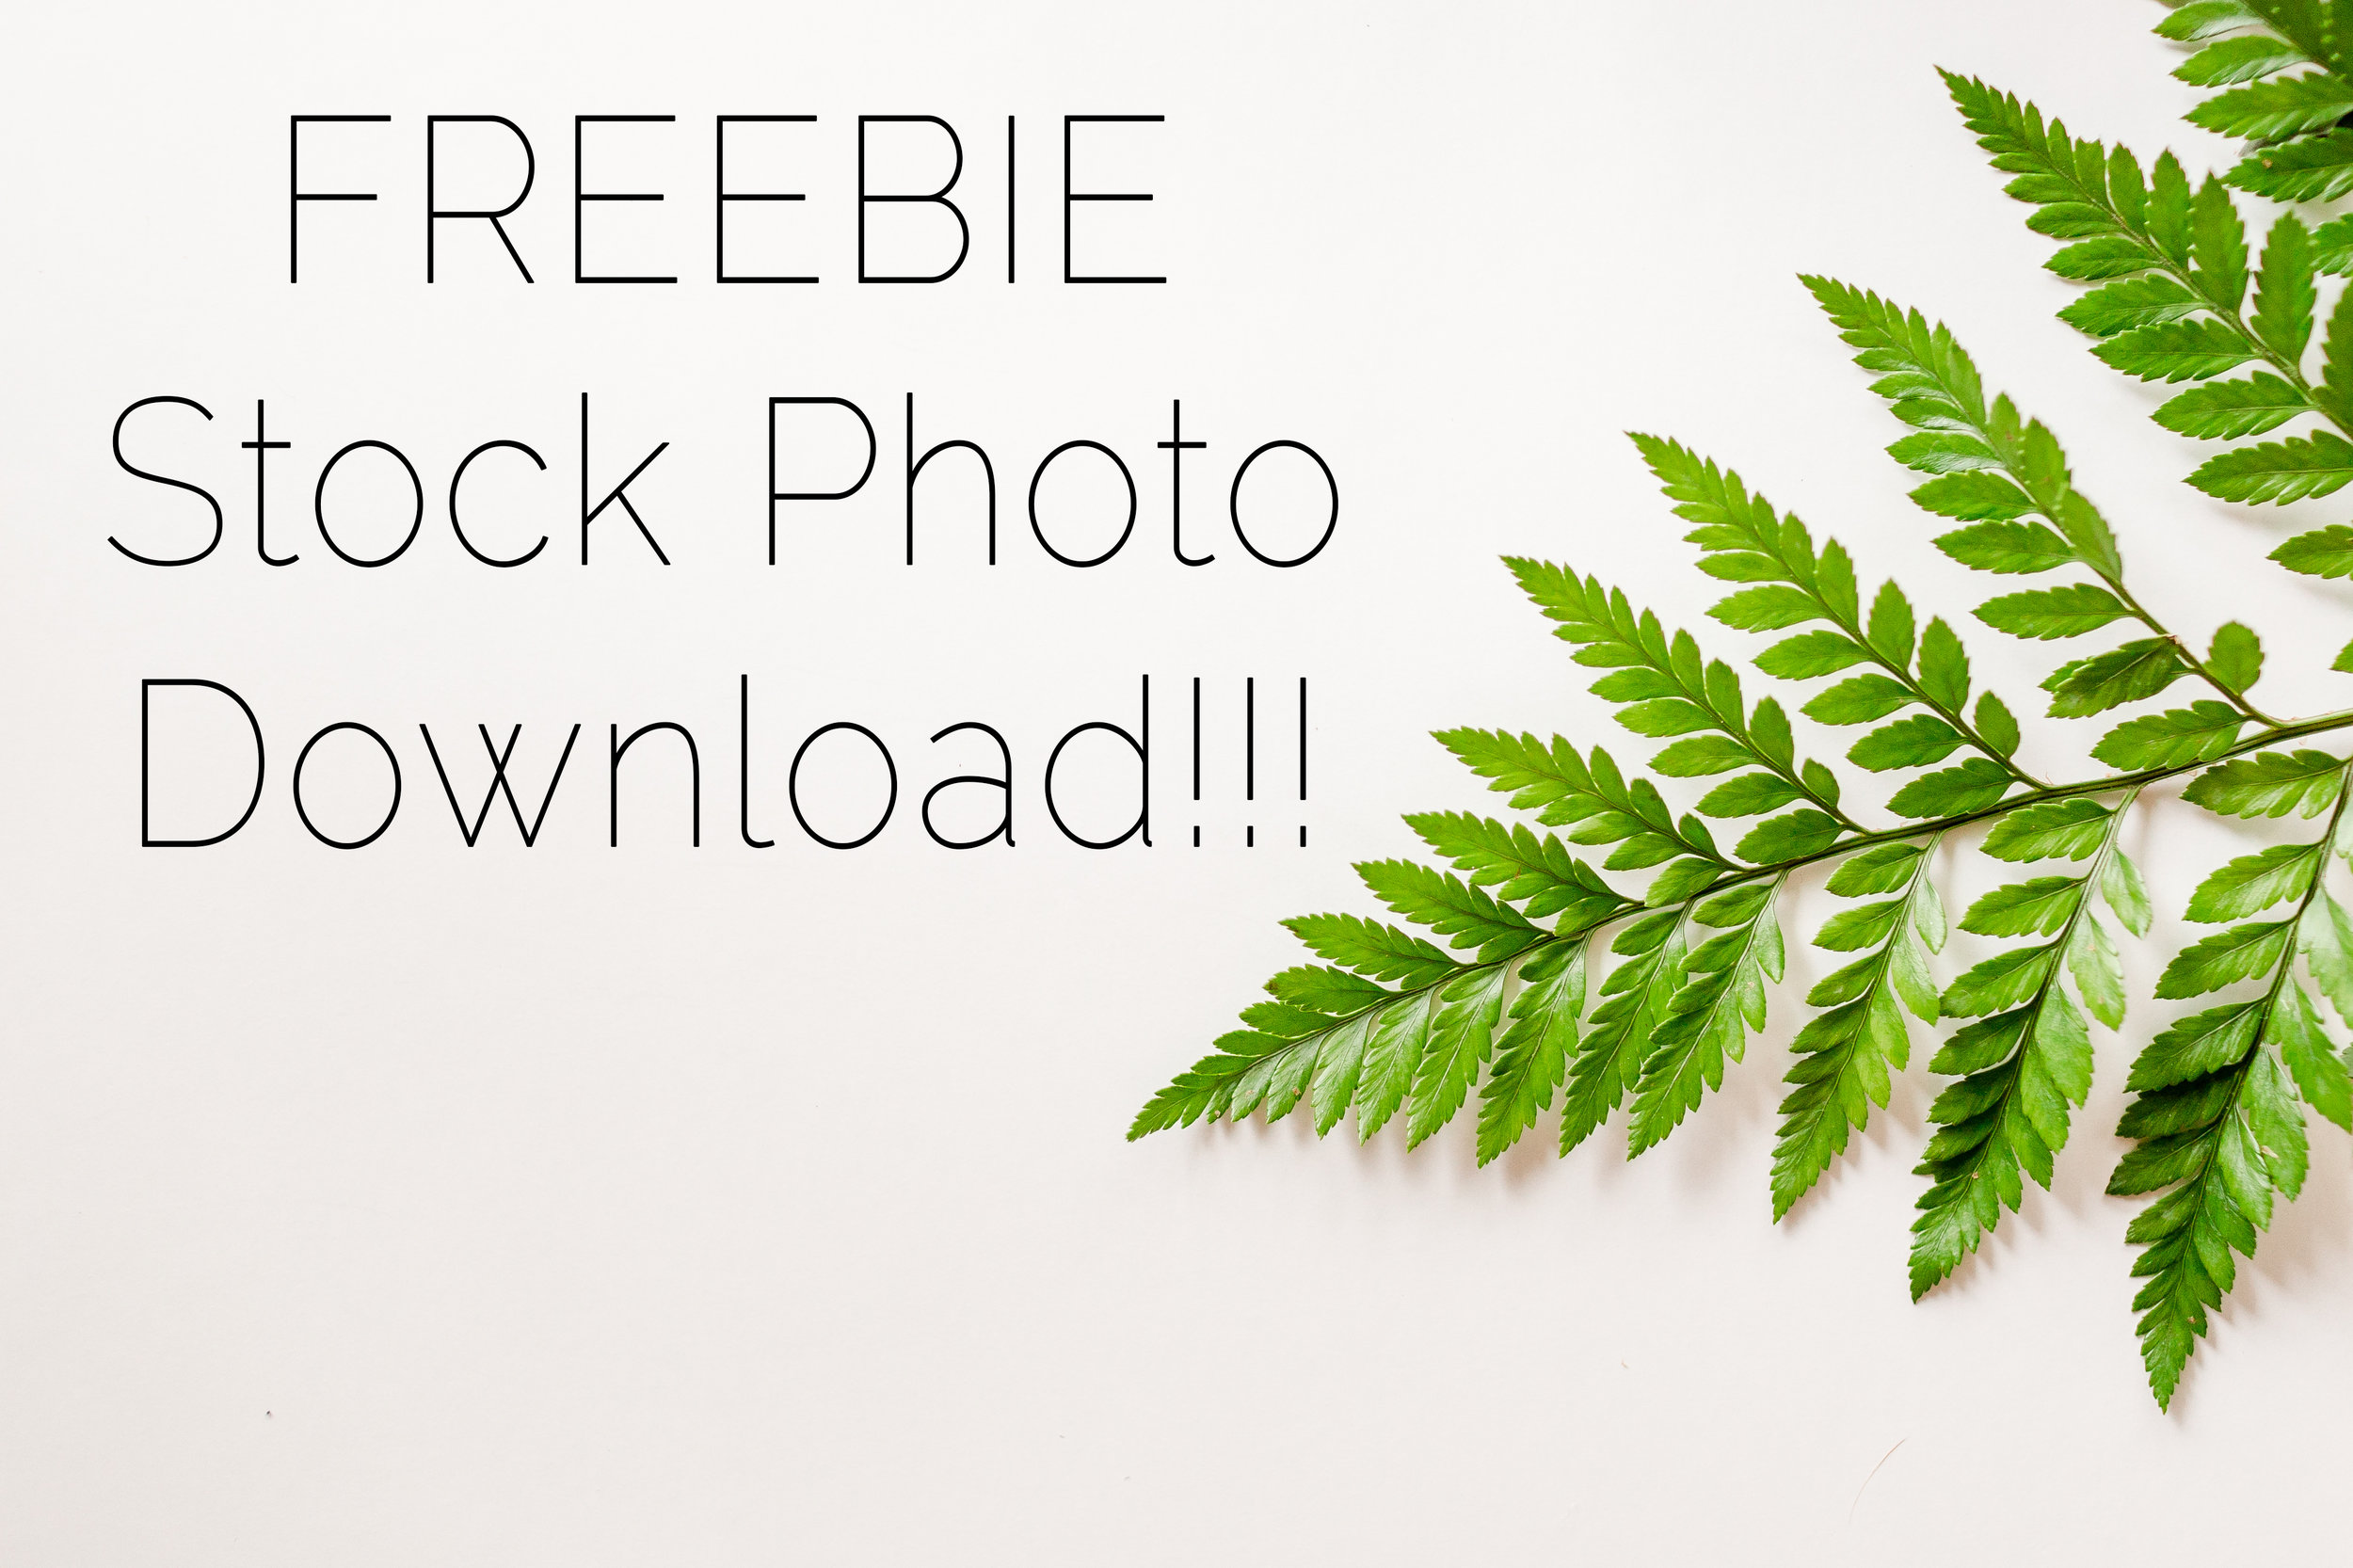 Click the Image for your freebies!